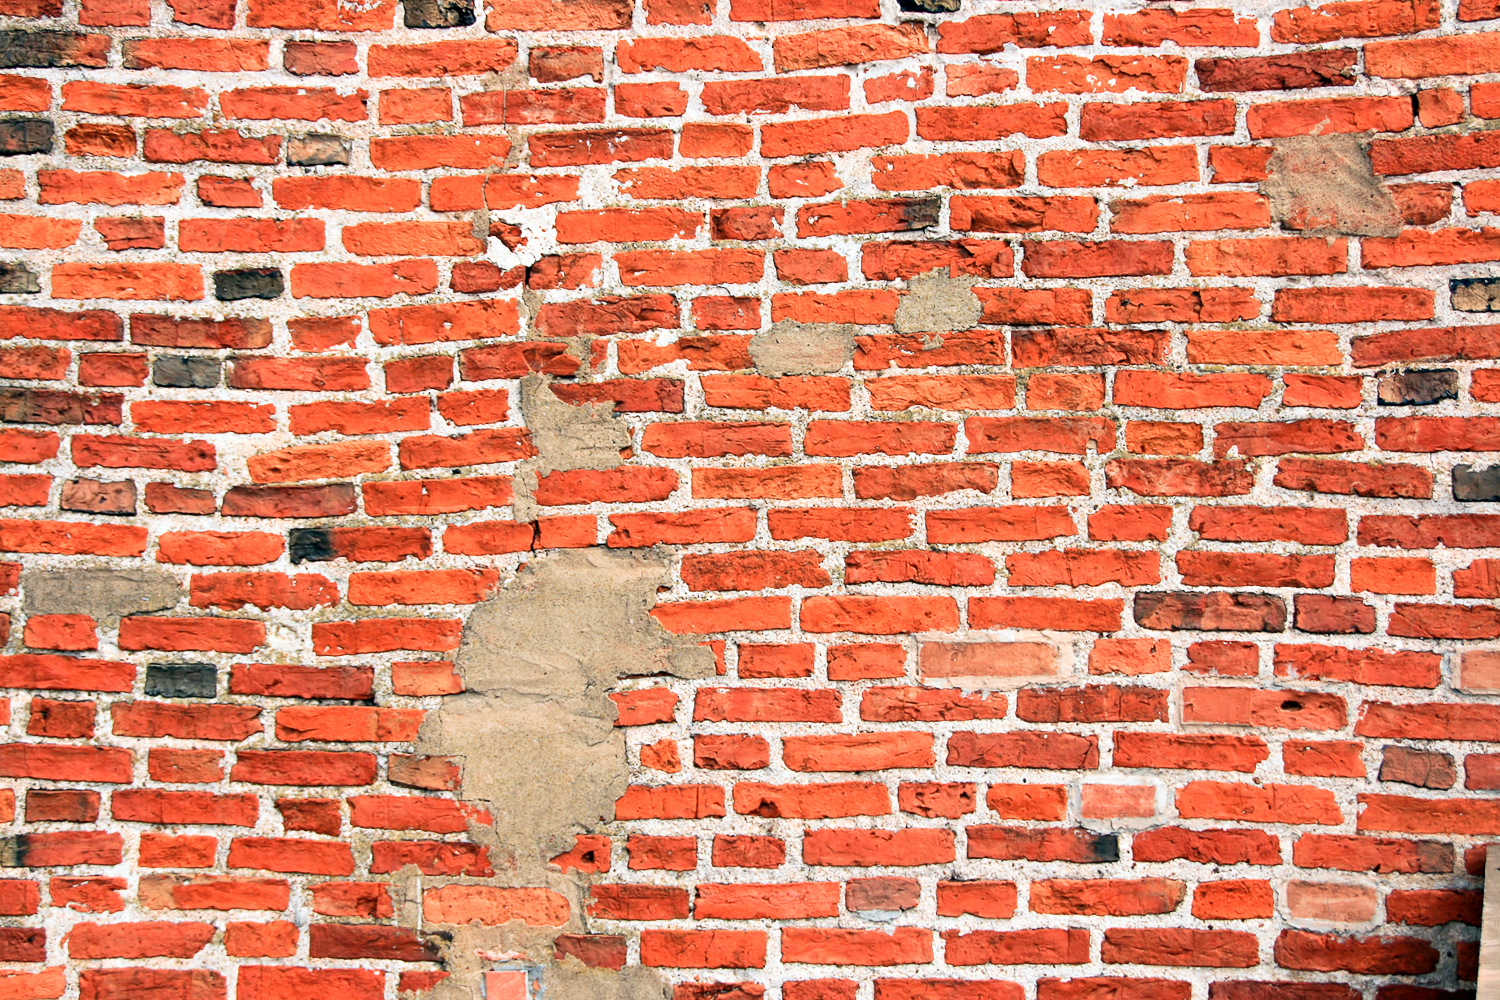 Red brick wall, Aging, Structure, Red, Revival, HQ Photo